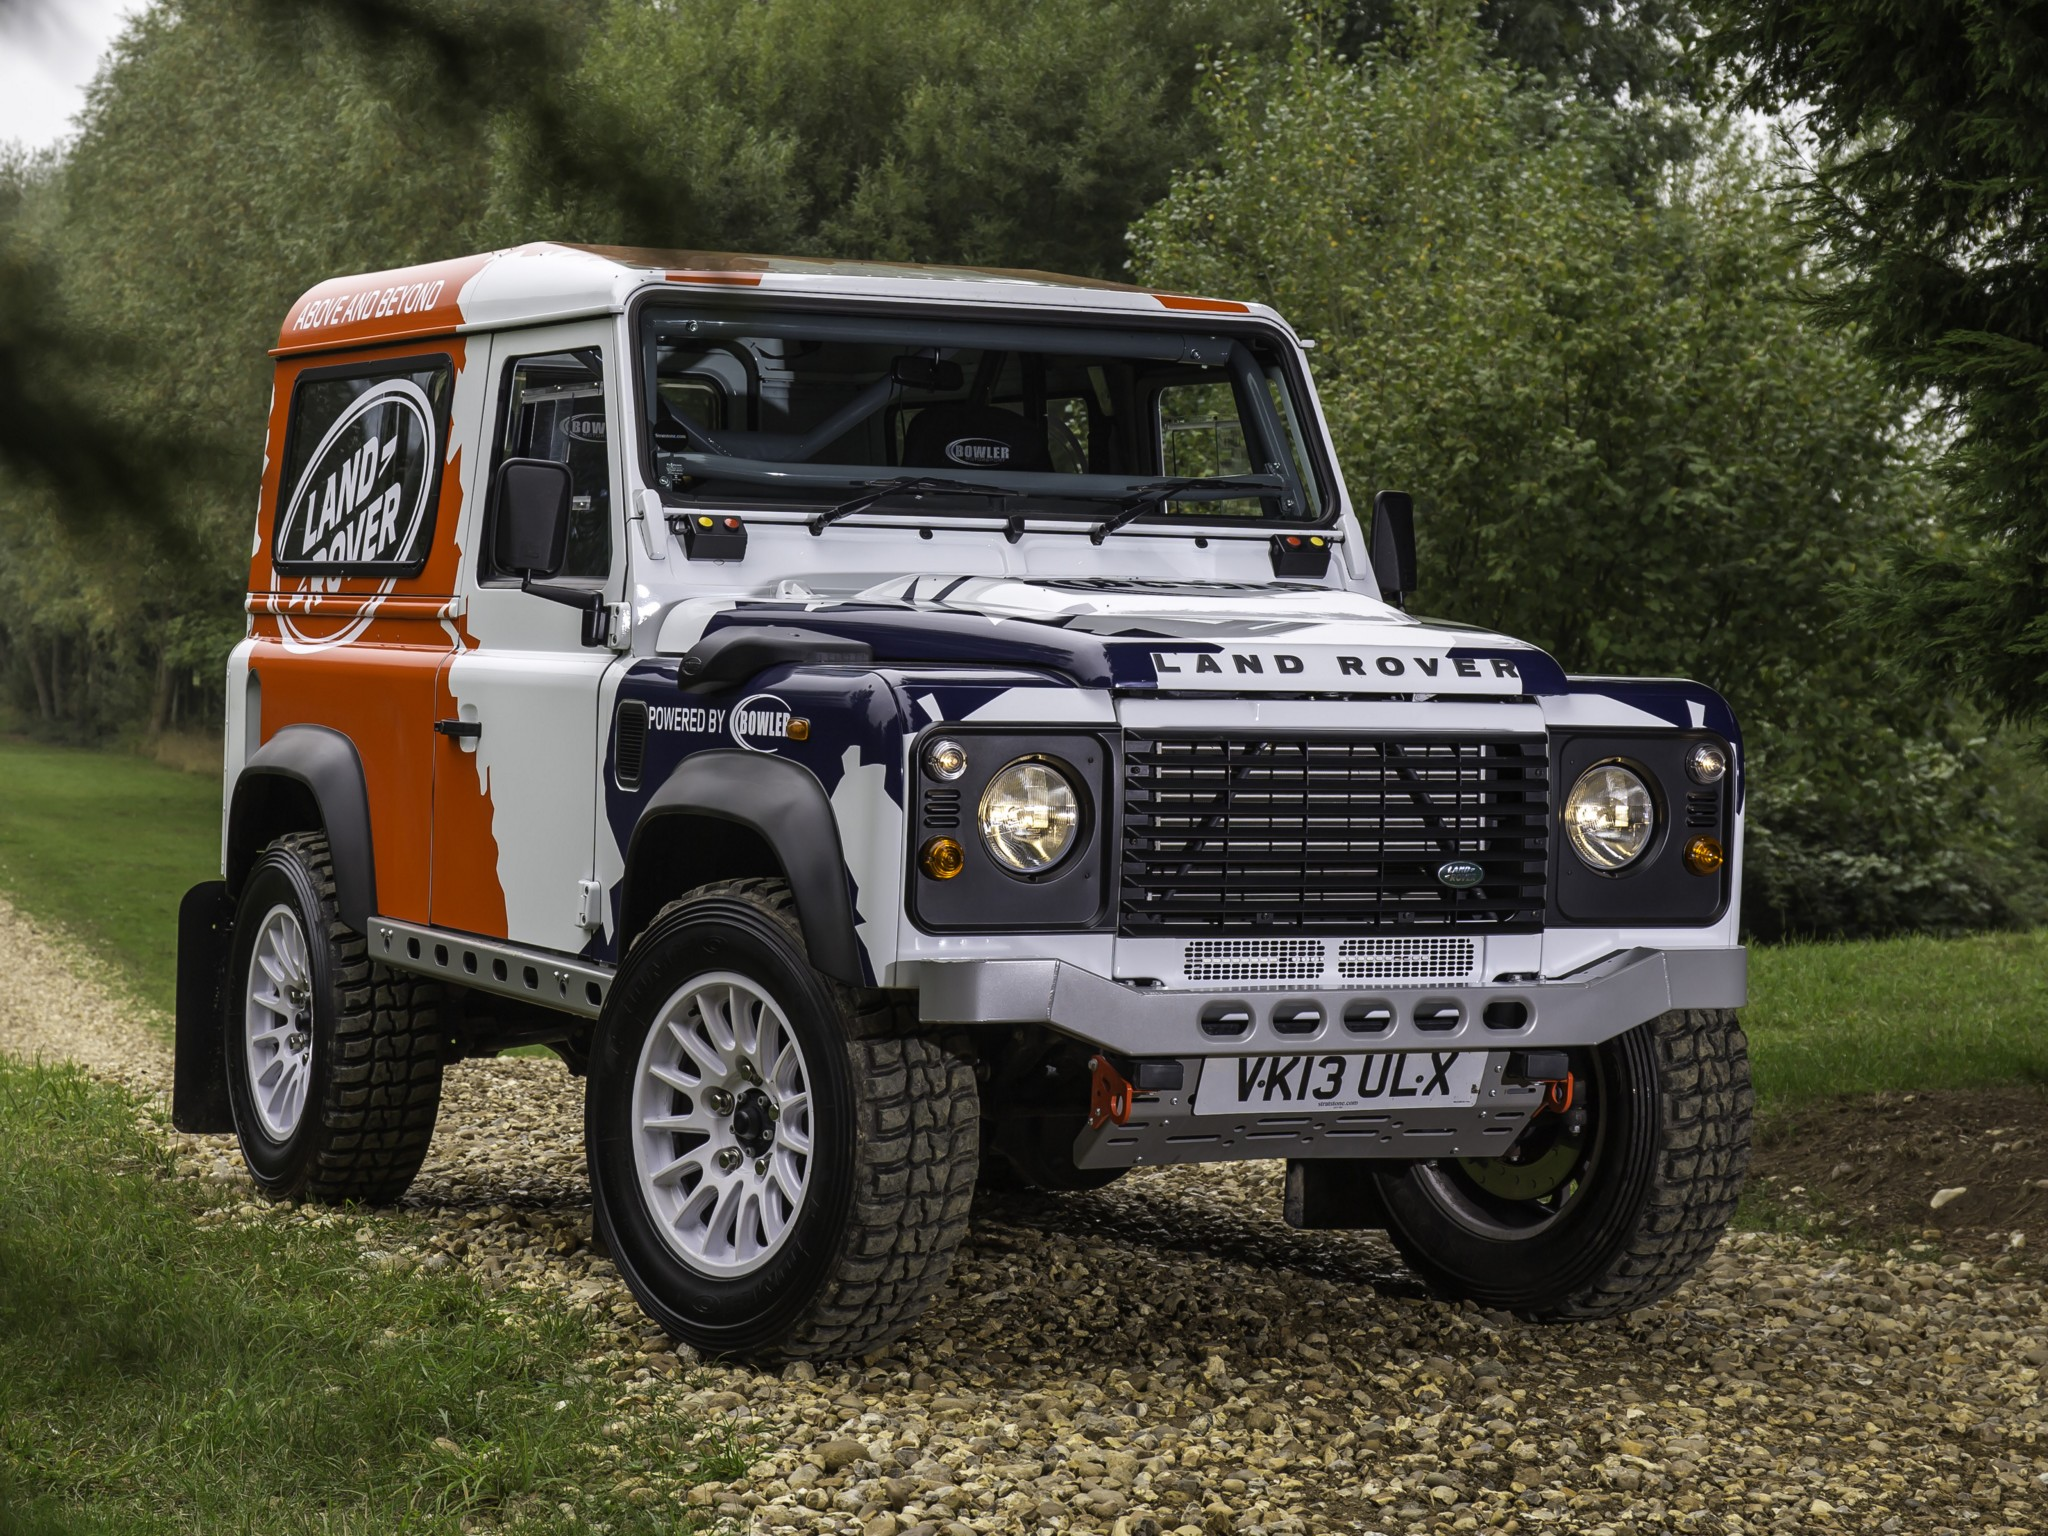 Land Rover Defender Challenge Truck suv 4x4 f wallpaper background 2048x1536